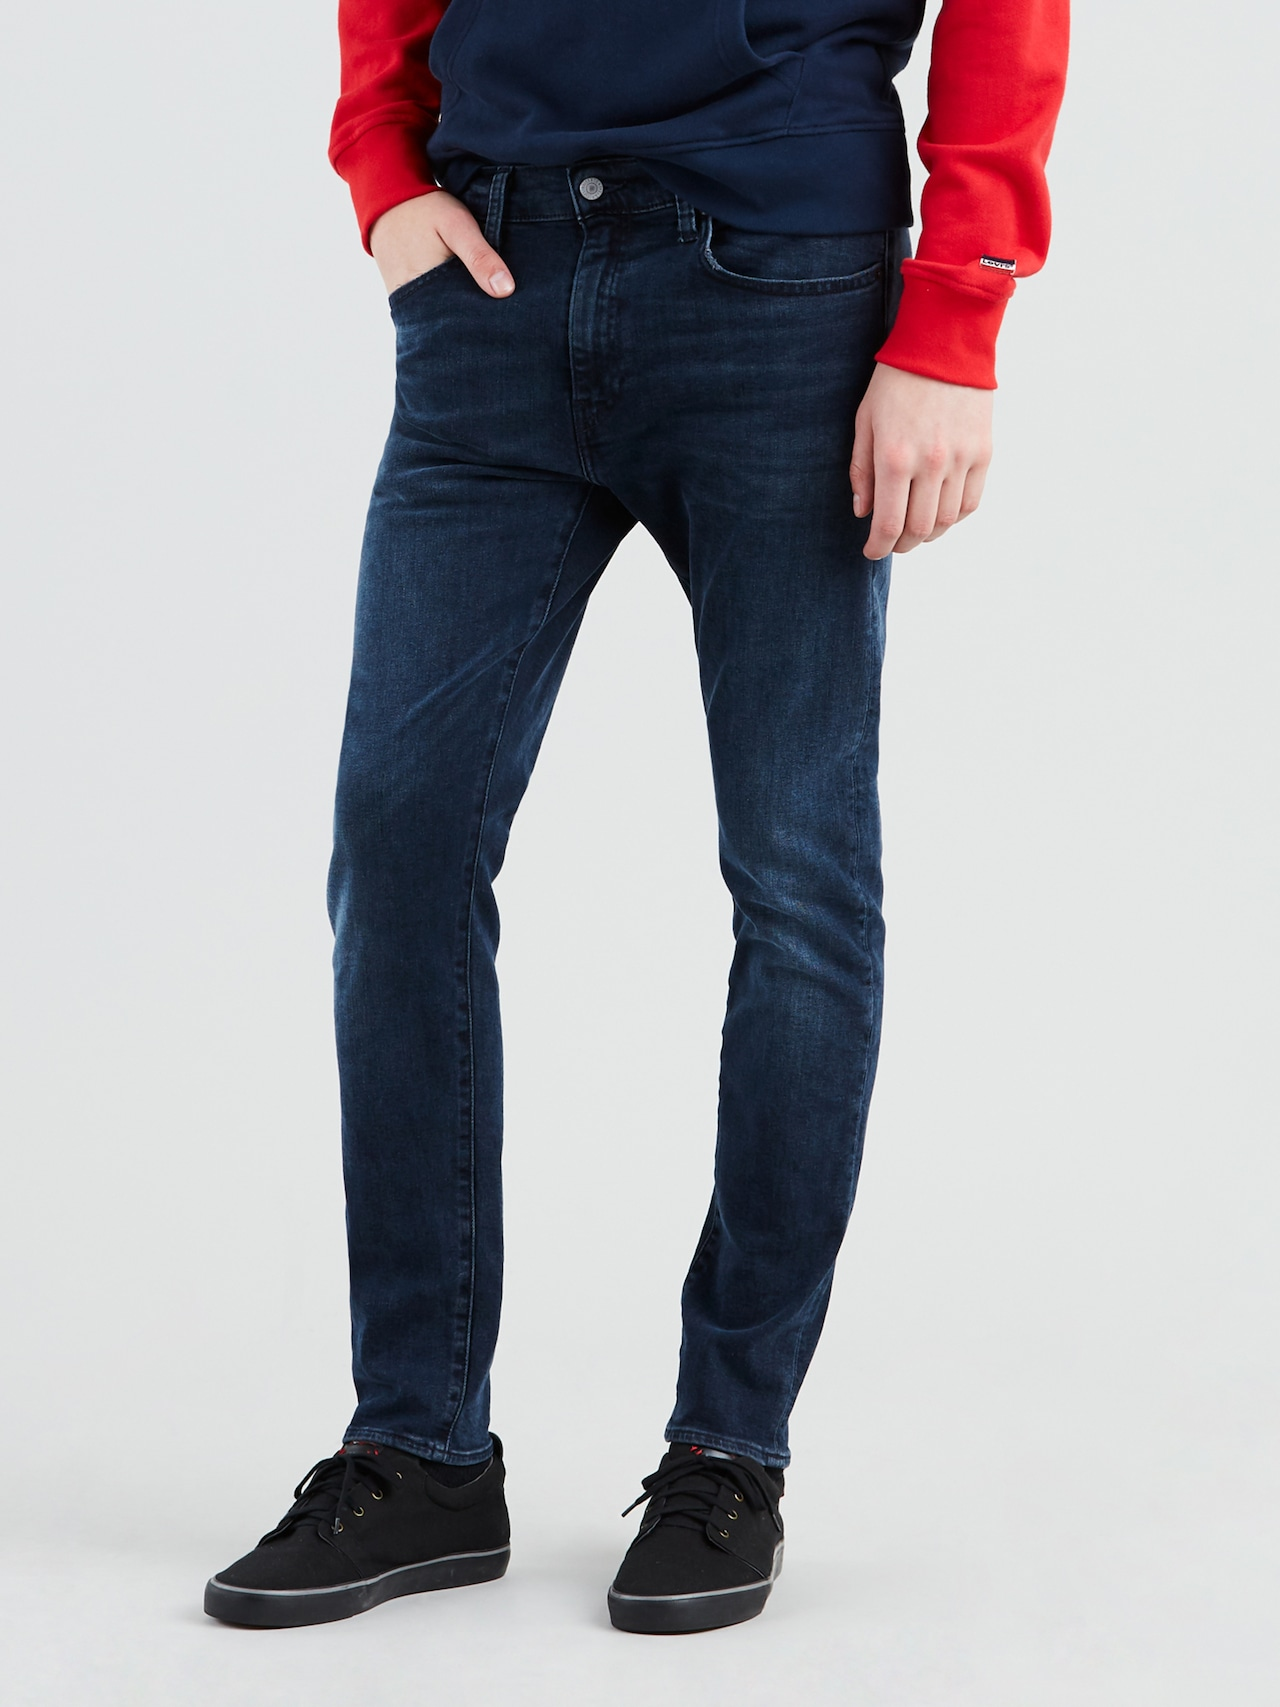 e2dc8041 Levis 512 Slim Taper In Abu - Just Jeans Online